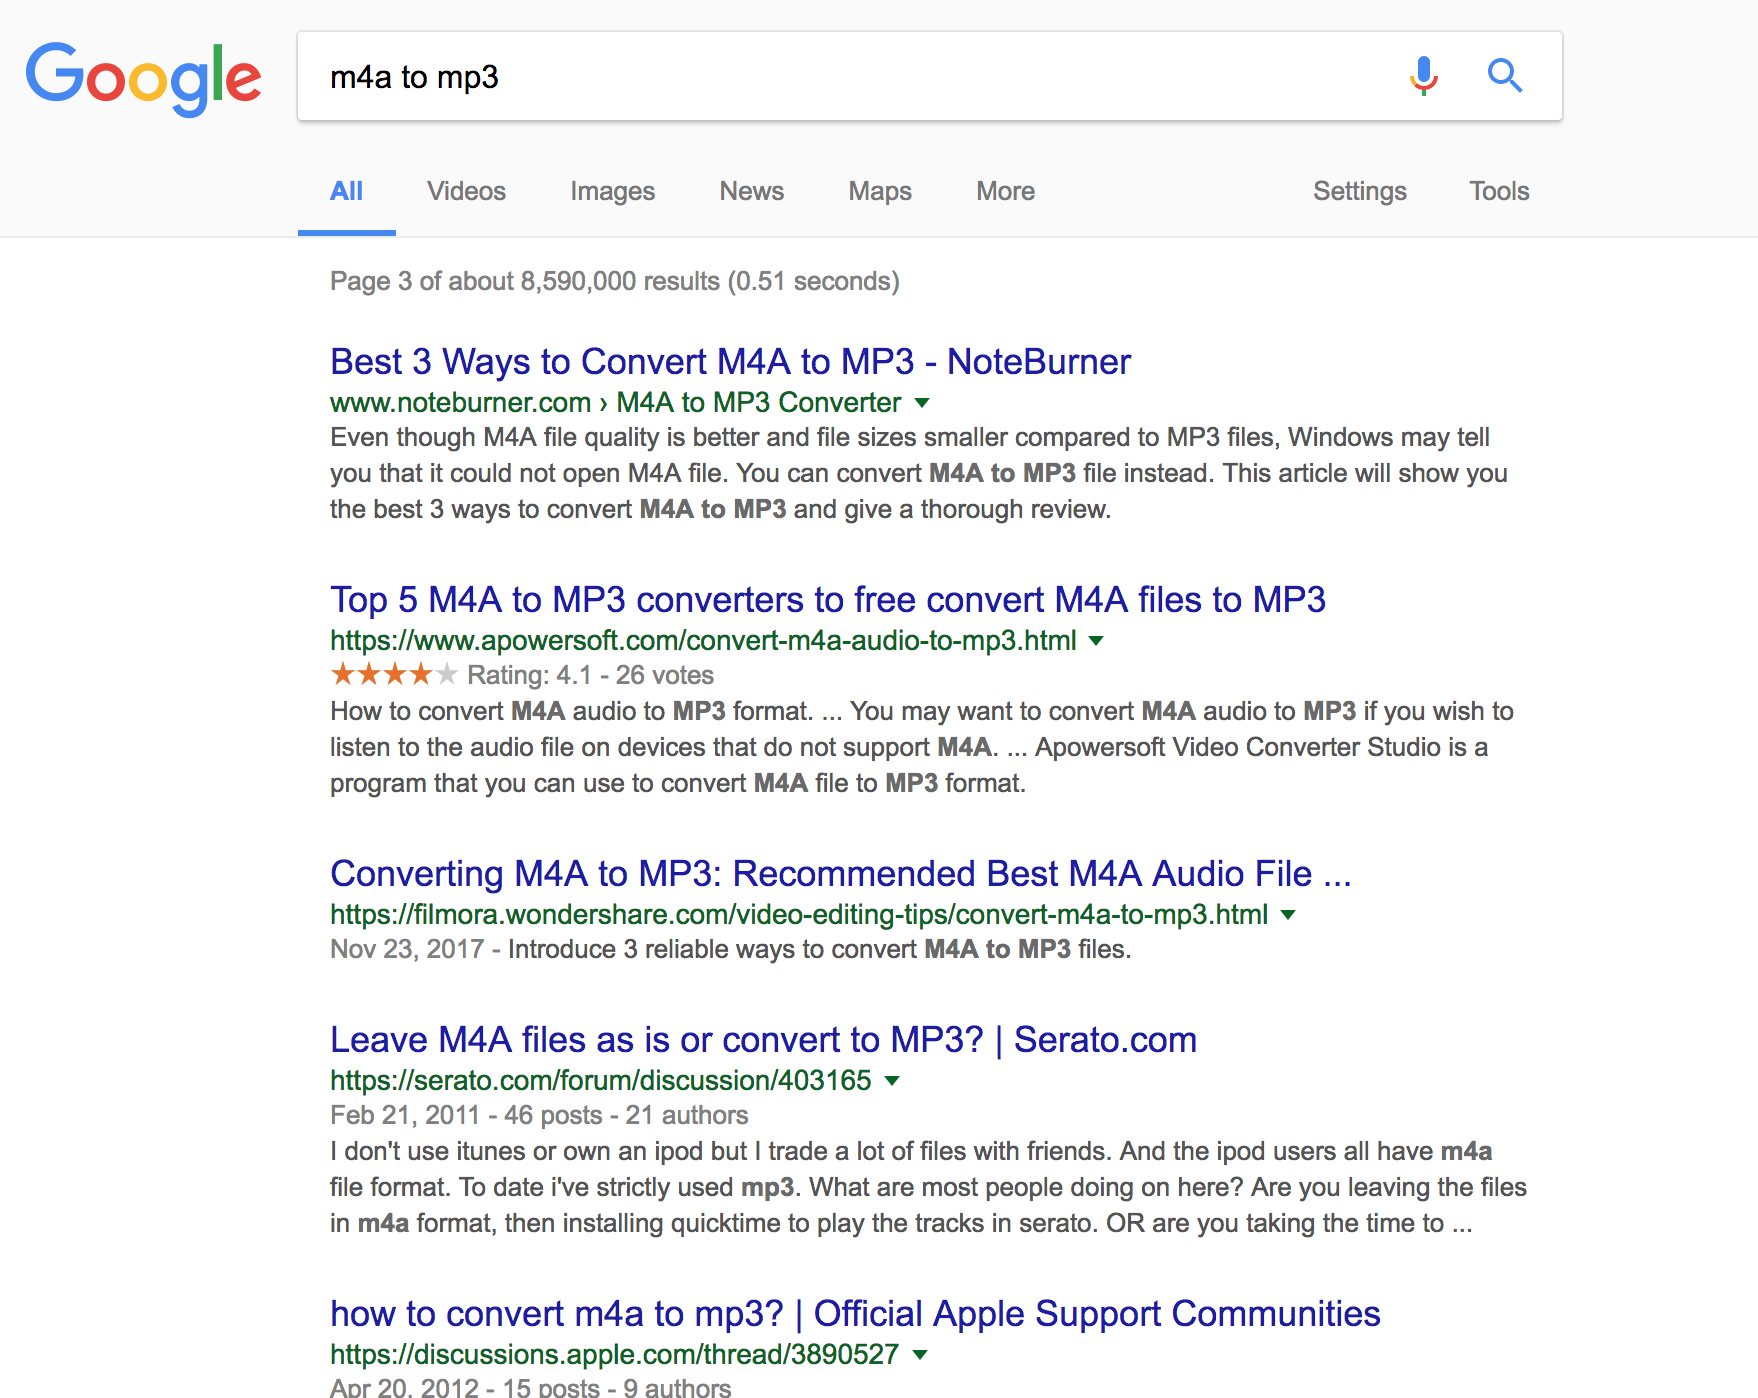 Google search results for m4a to mp3